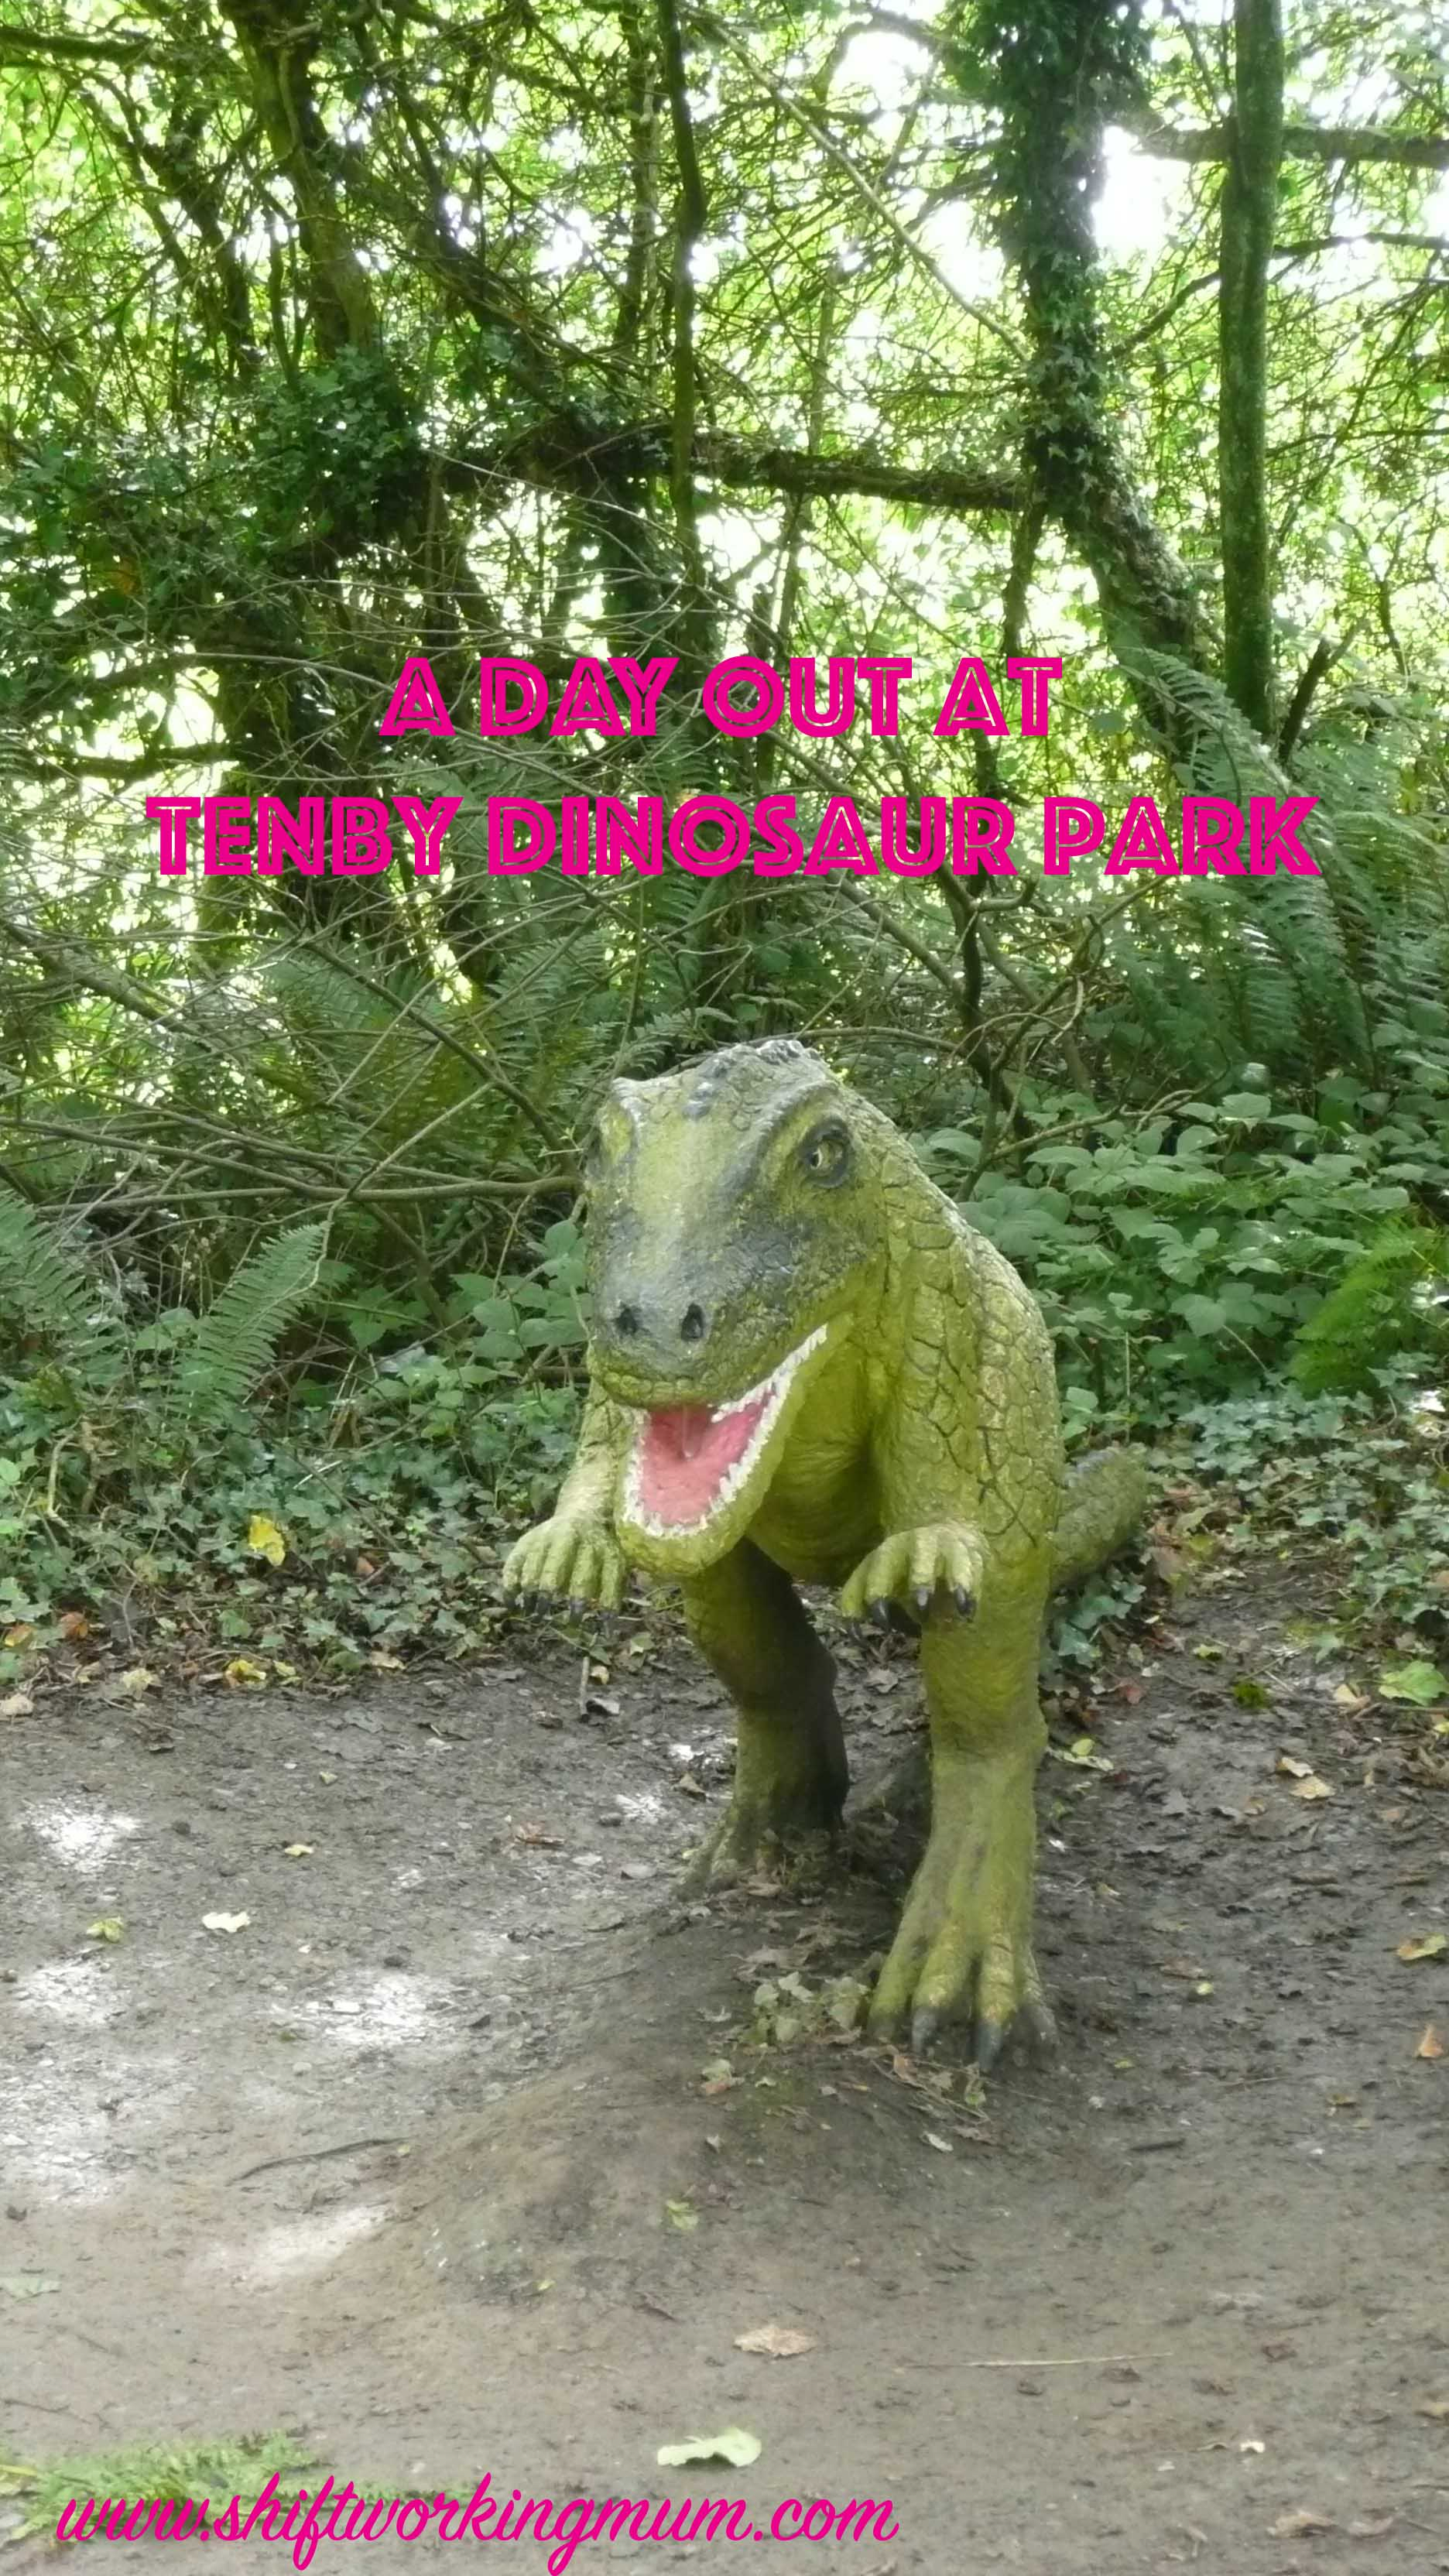 A Day out at Great Wedlock Dinosaur Experience